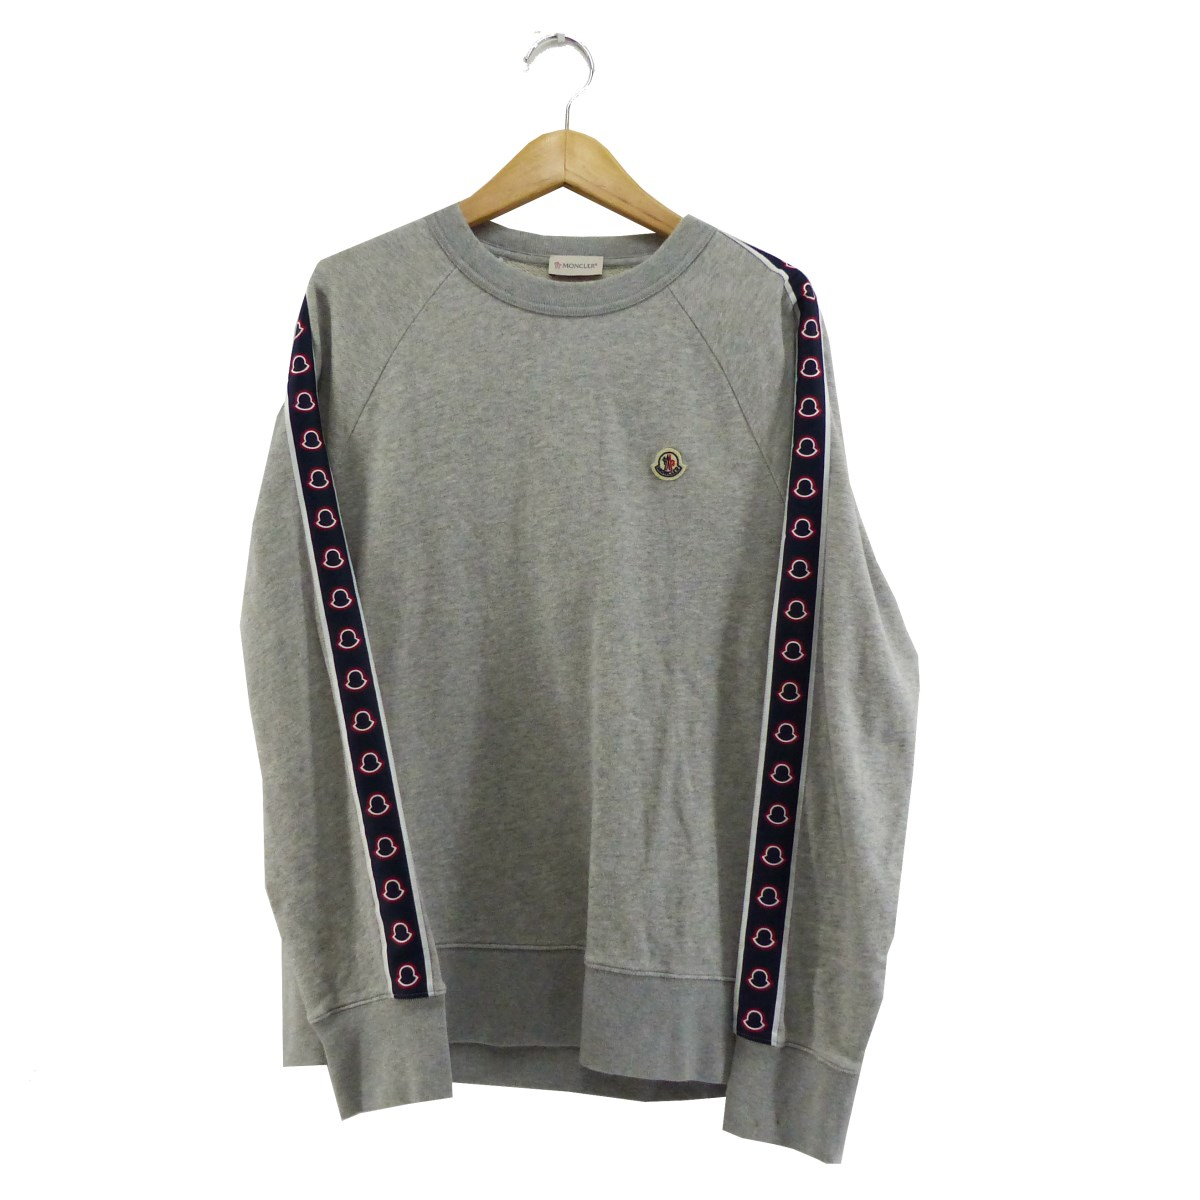 【中古】MONCLERBRADED SWEAT SHIRT グレー サイズ:L